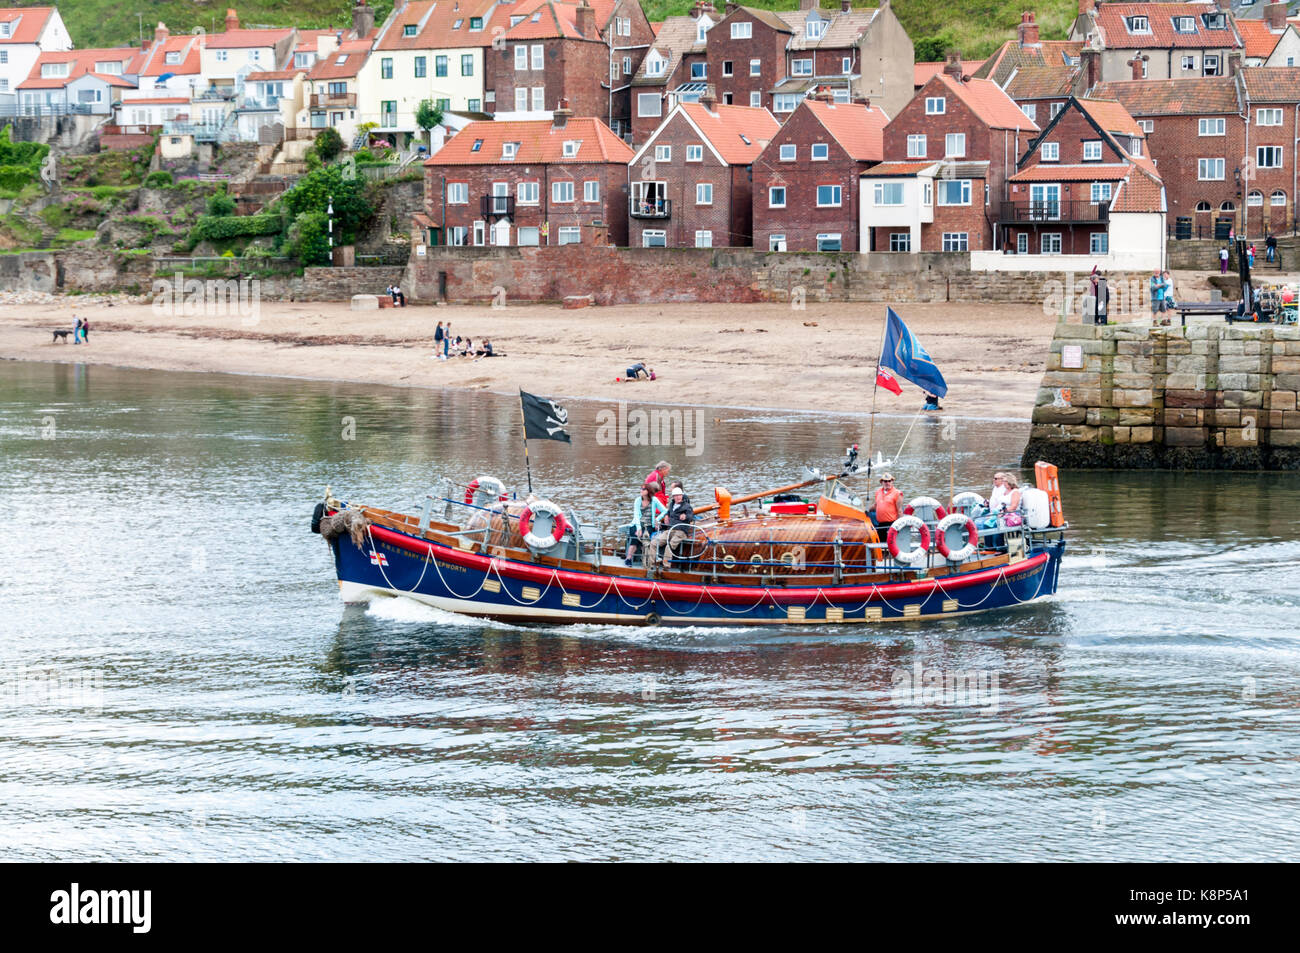 Boat trips around Whitby harbour in RNLB Mary Ann Hepworth, the old Whitby lifeboat. - Stock Image